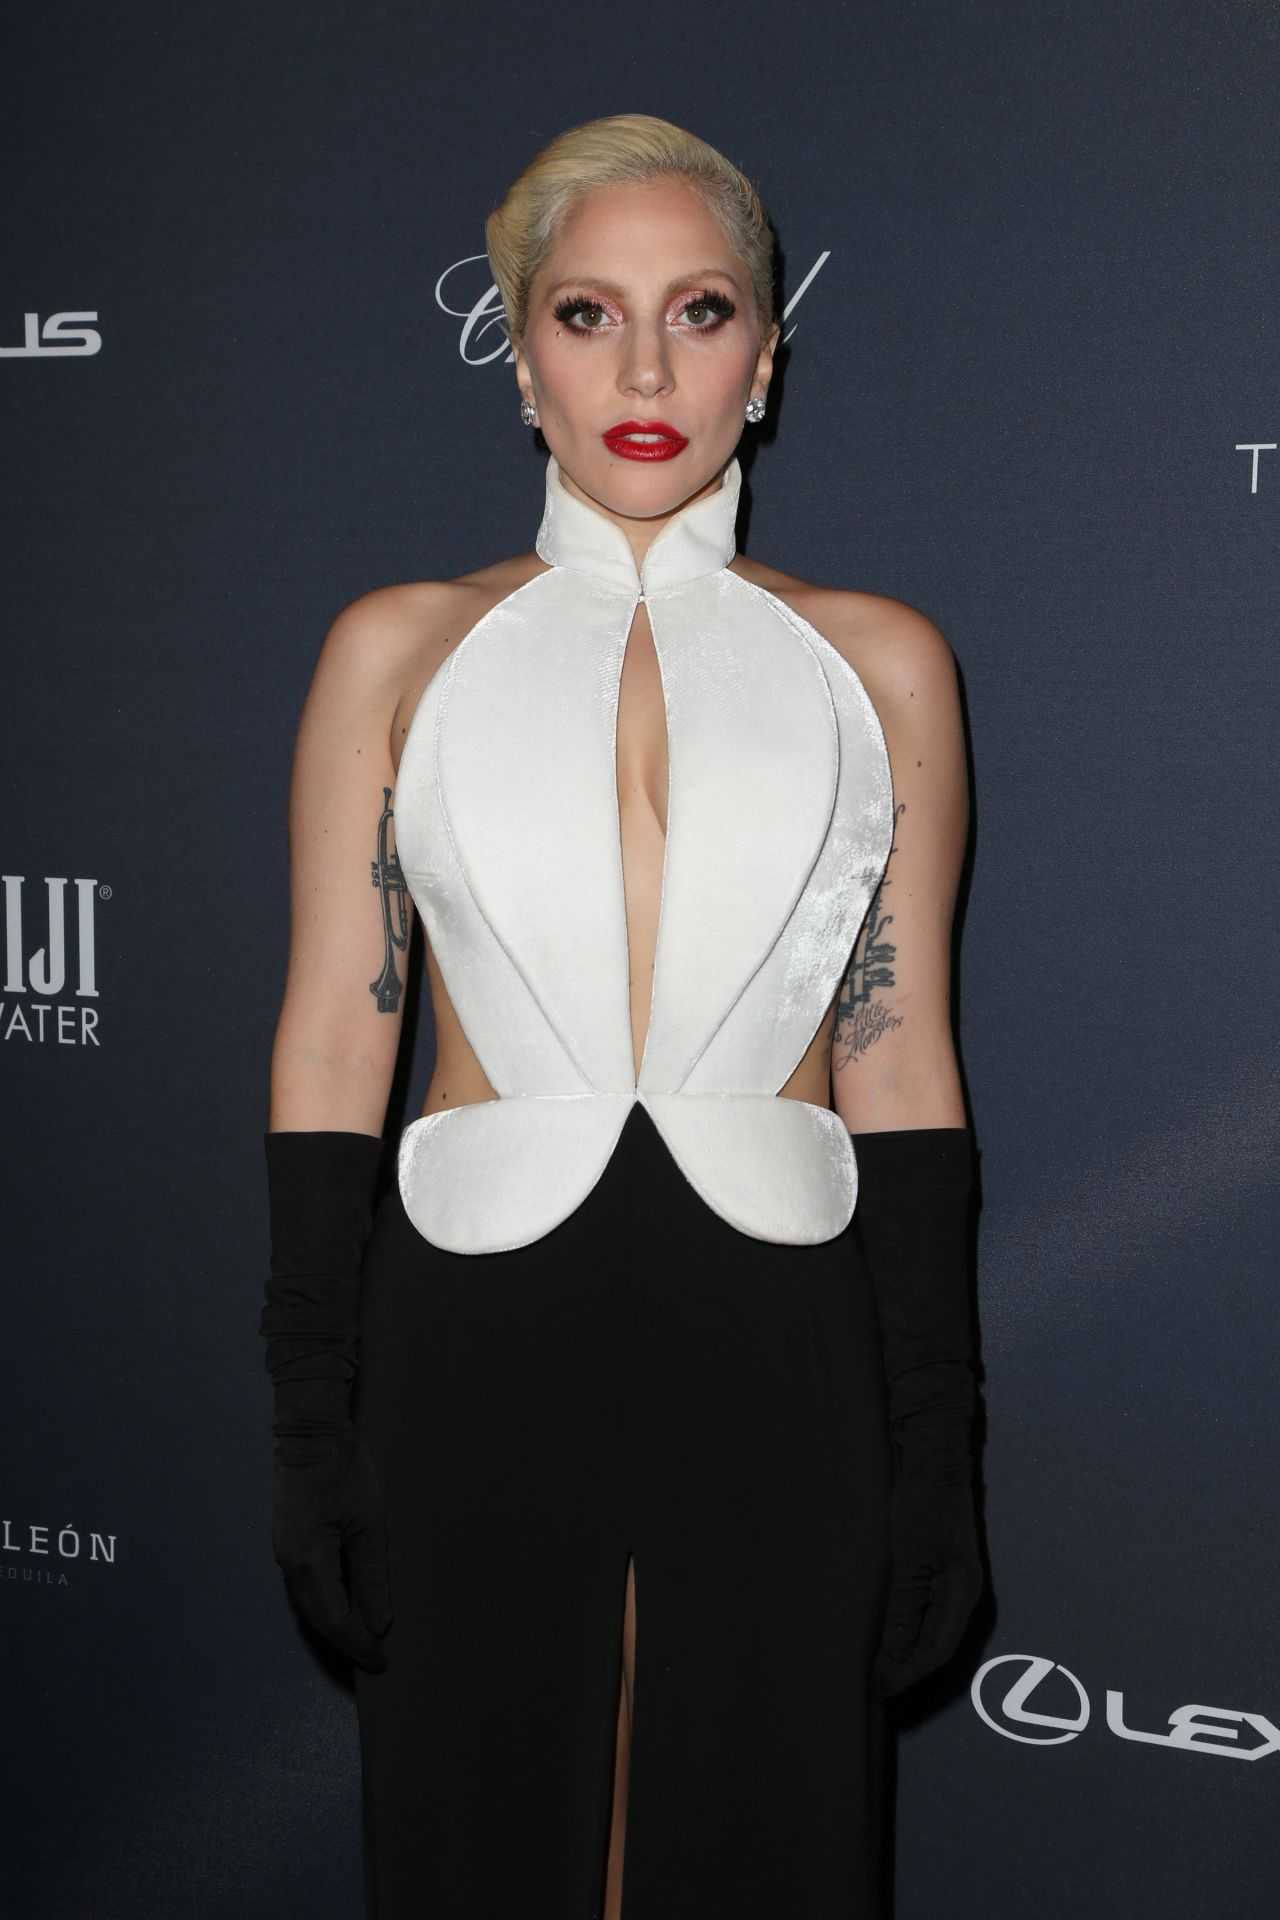 lady-gaga-weinstein-company-s-pre-oscar-dinner-in-beverly-hills-2-27-2016-1